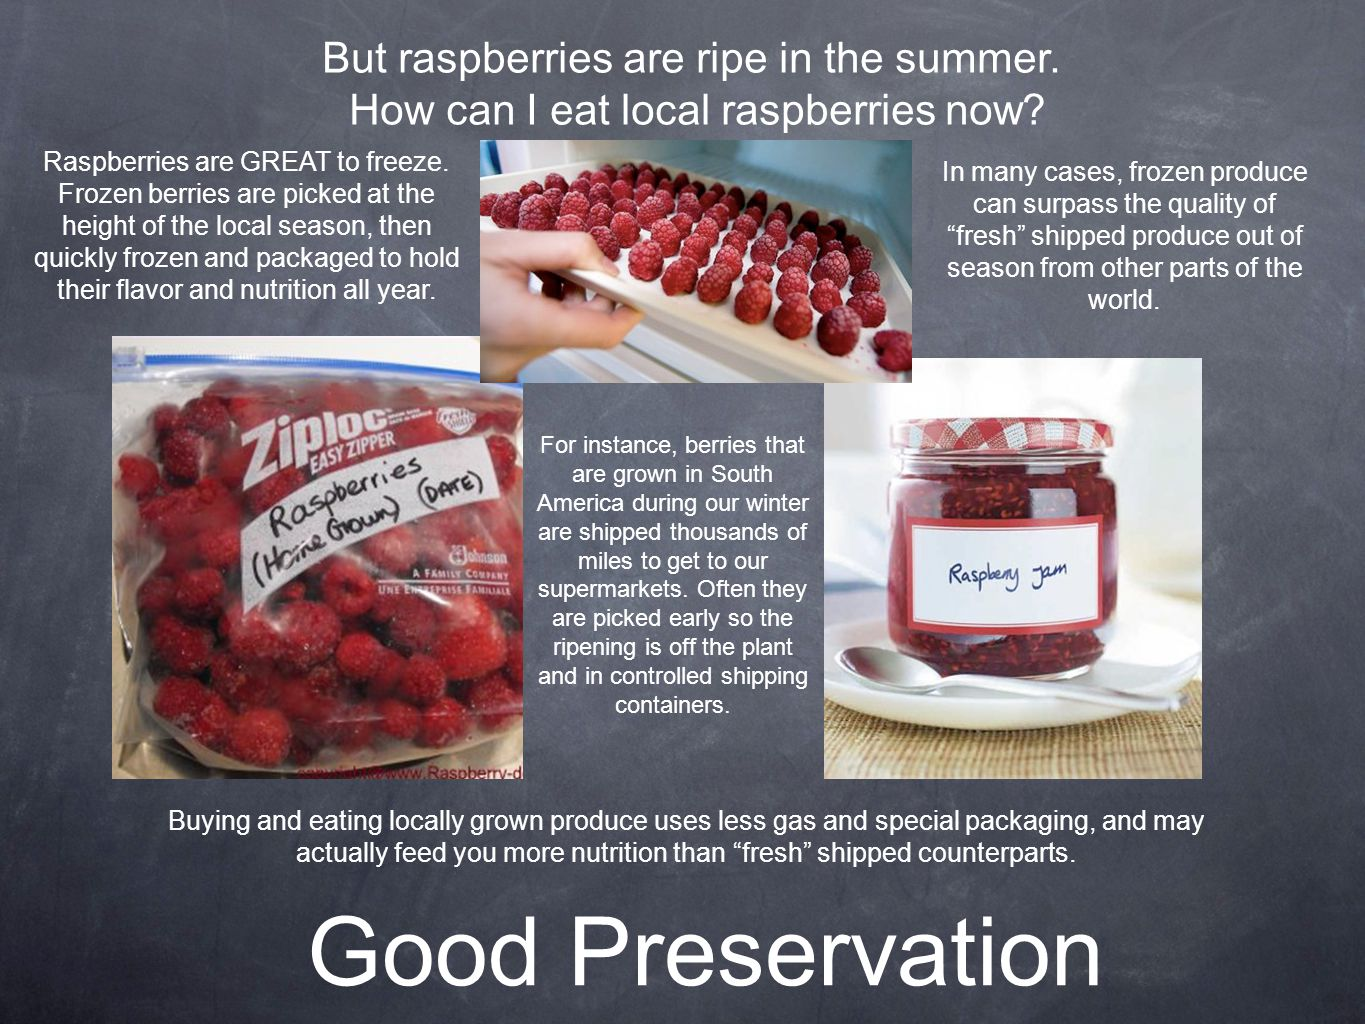 Good Preservation But raspberries are ripe in the summer.